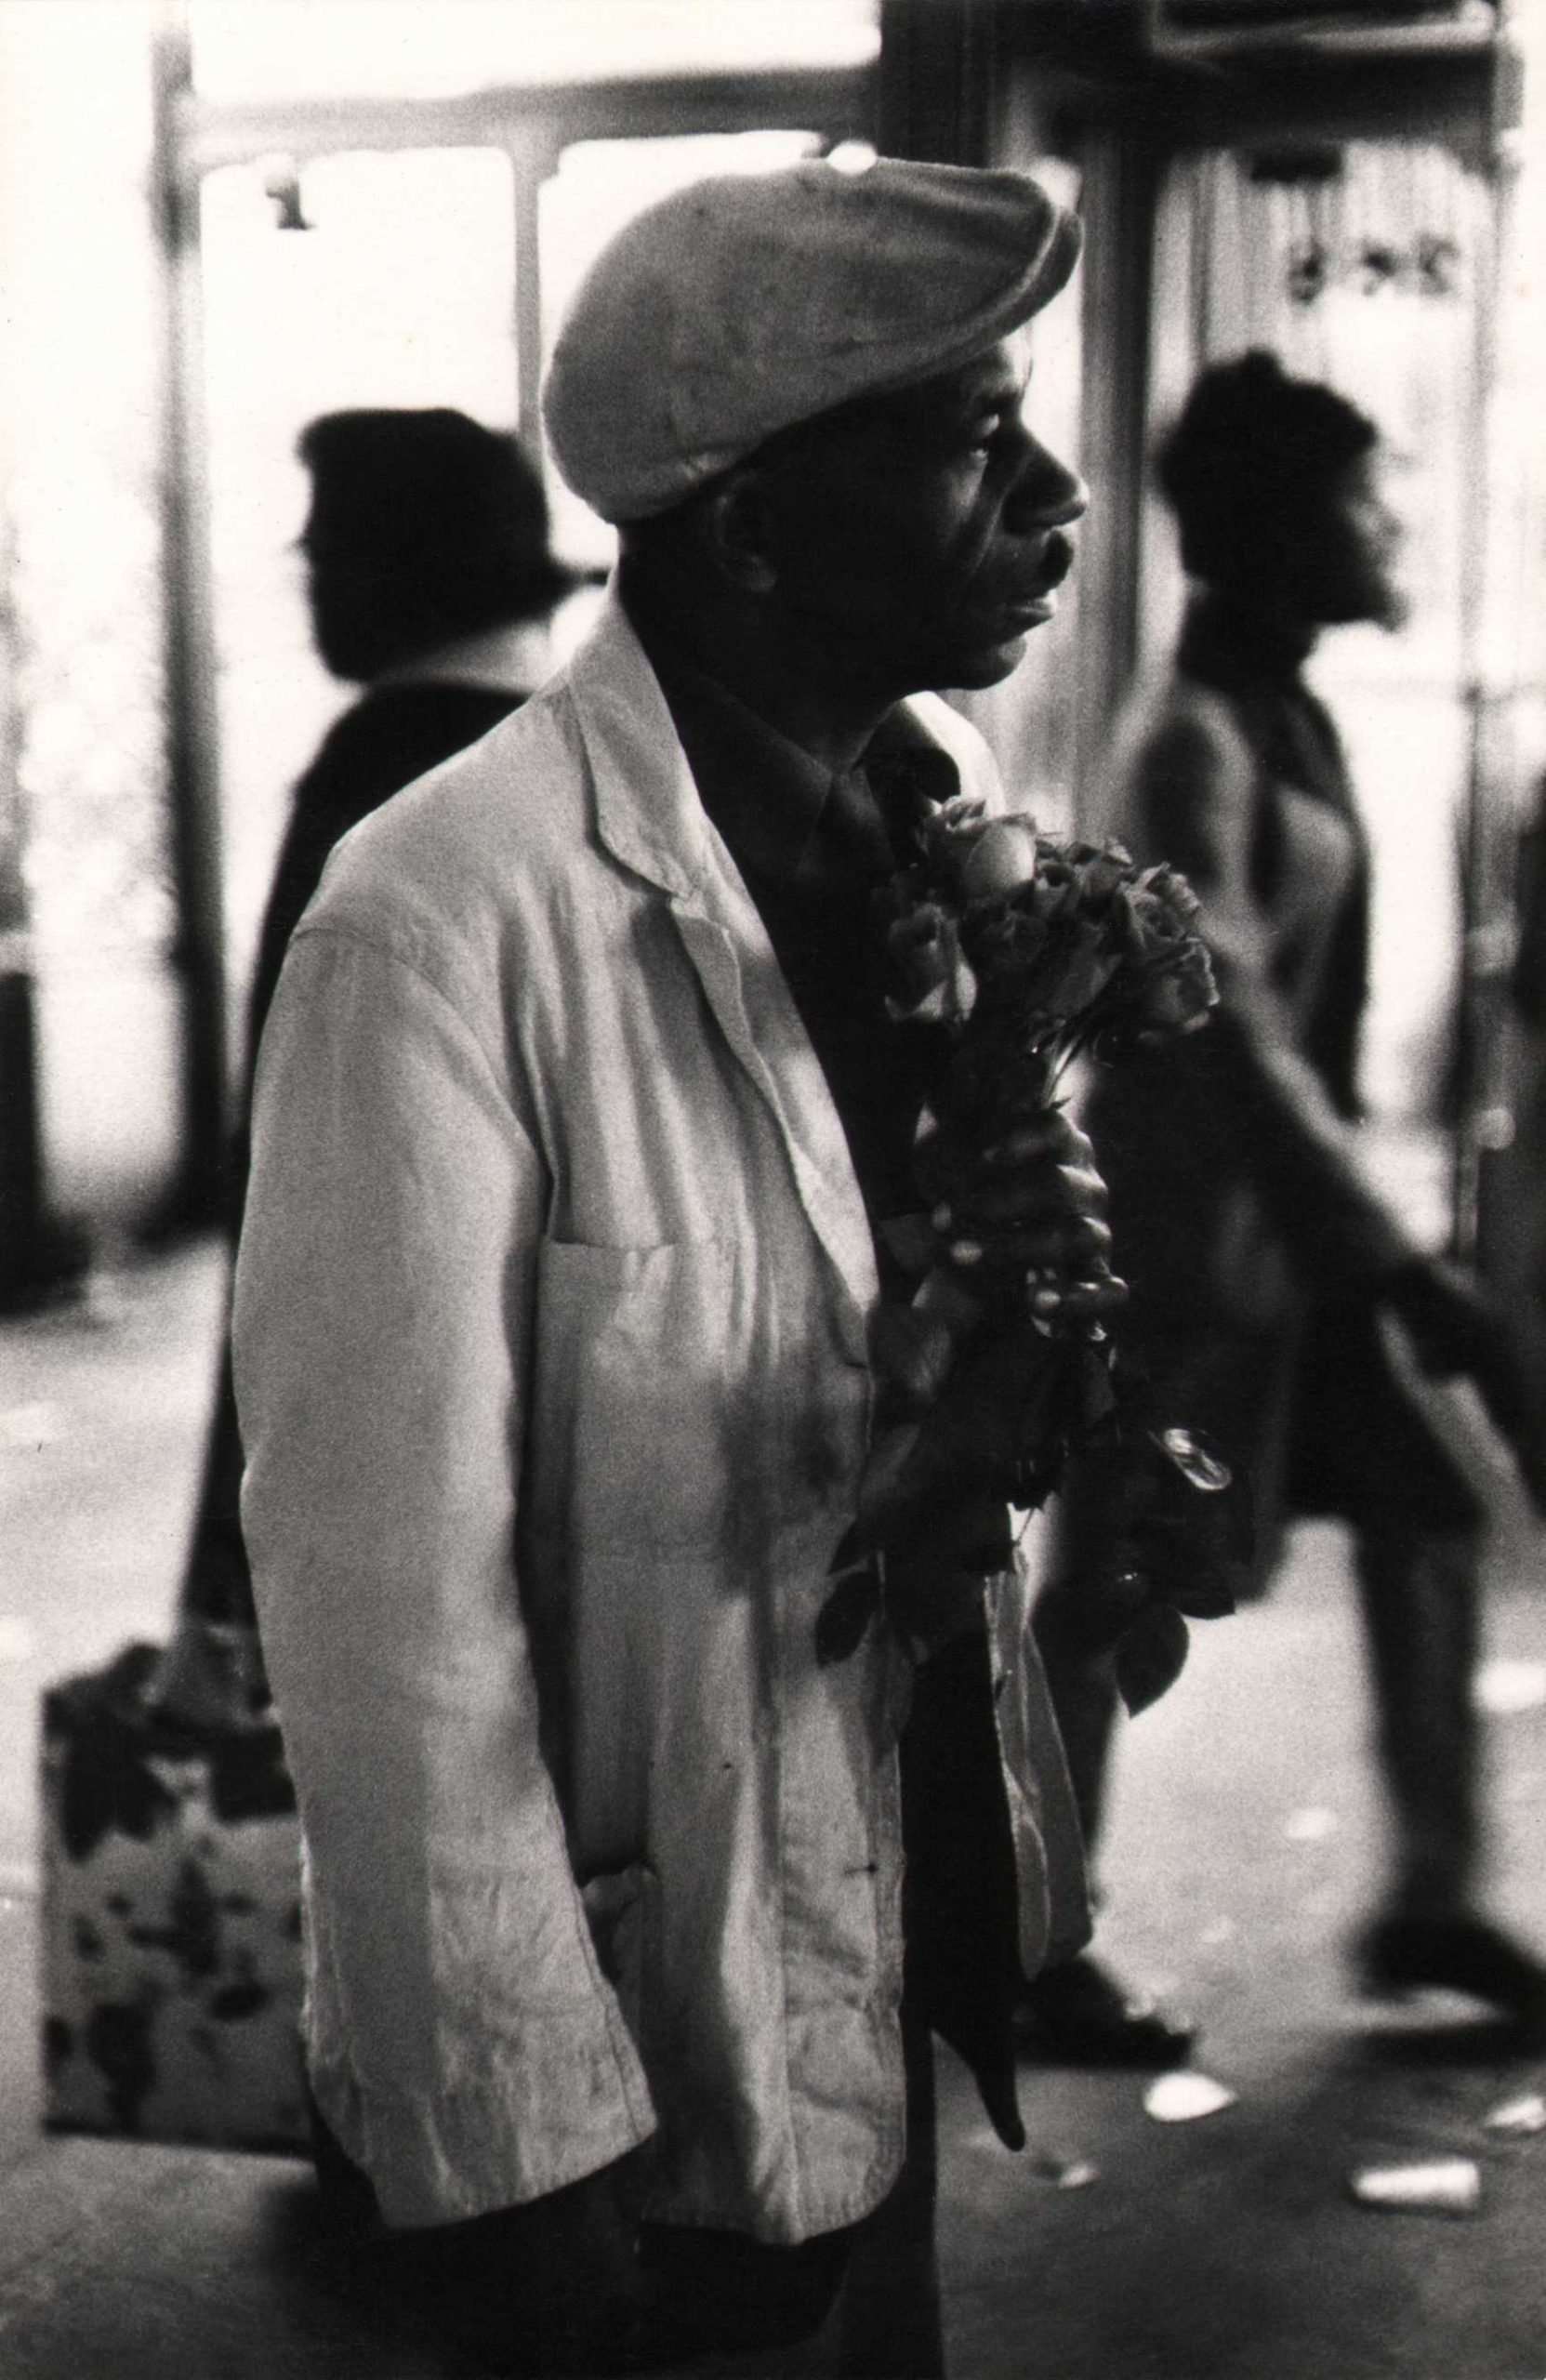 Beuford Smith, Man with Roses, 125th Street